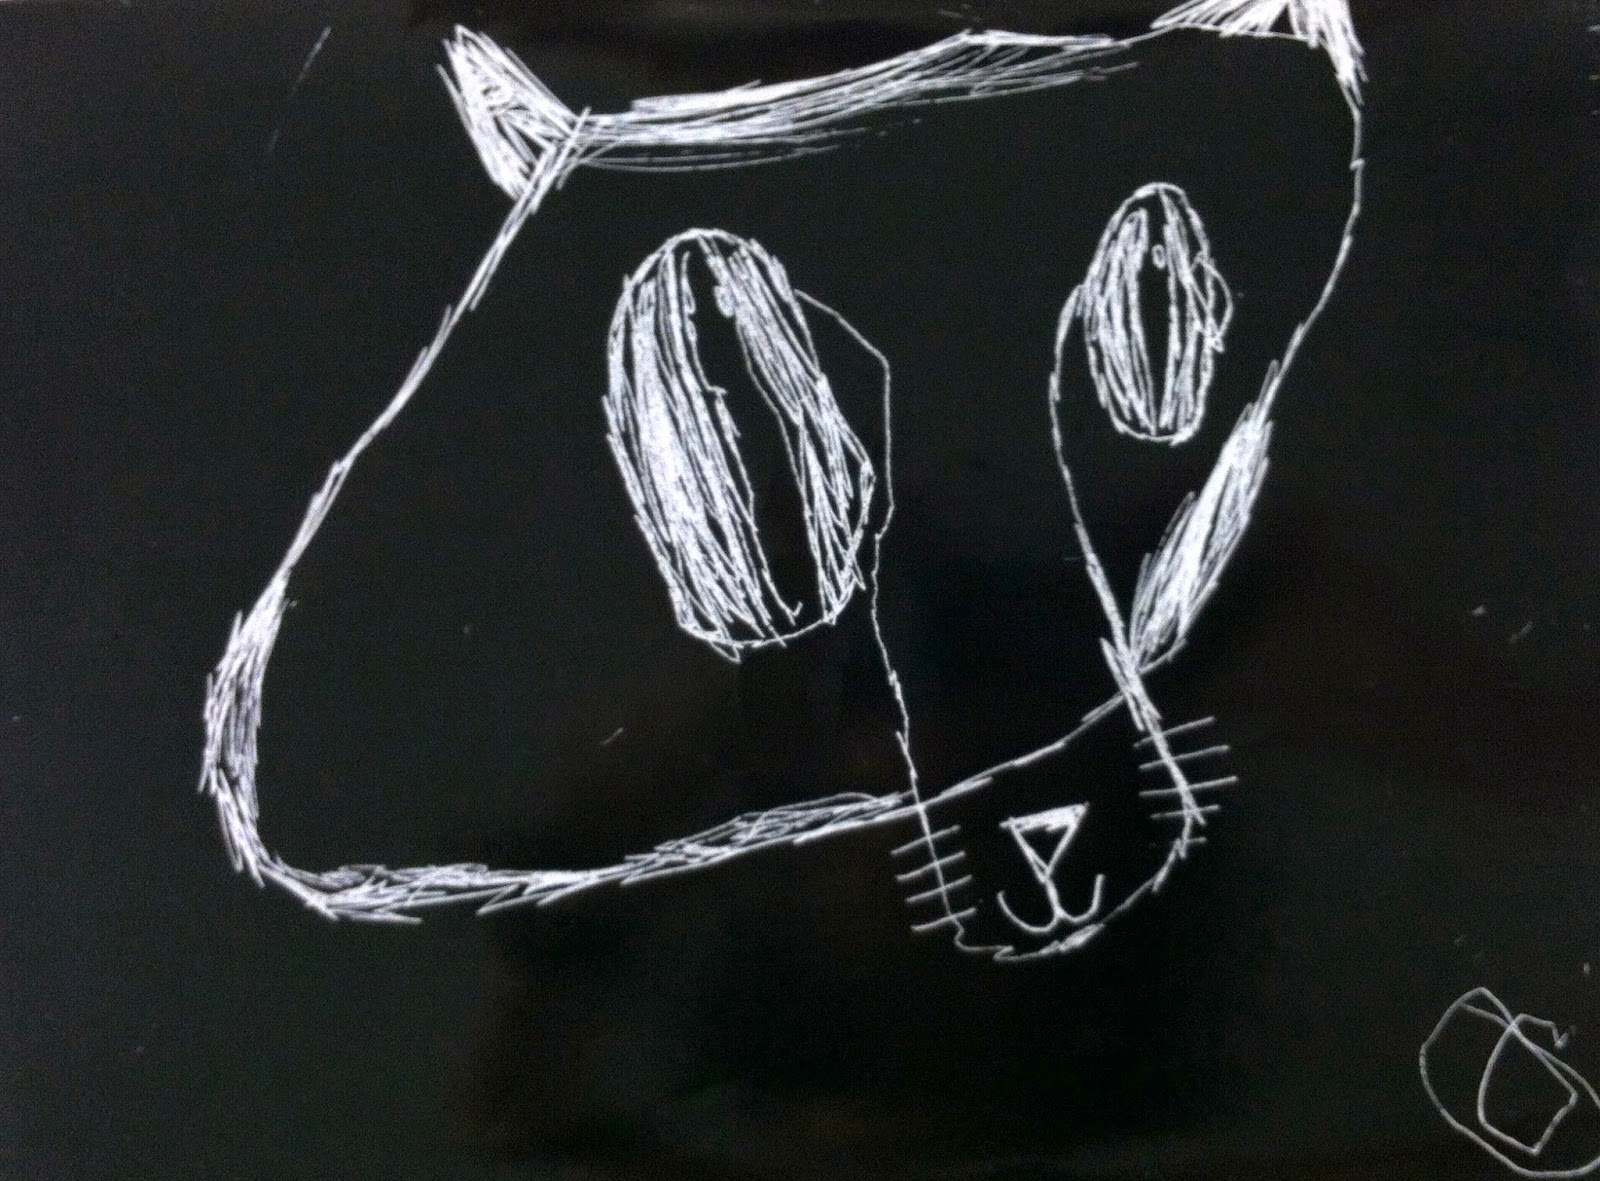 Kindergarten Fox Scratch Art I Love How These Foxes Turned Out Especially The Last One With Huge Eyes